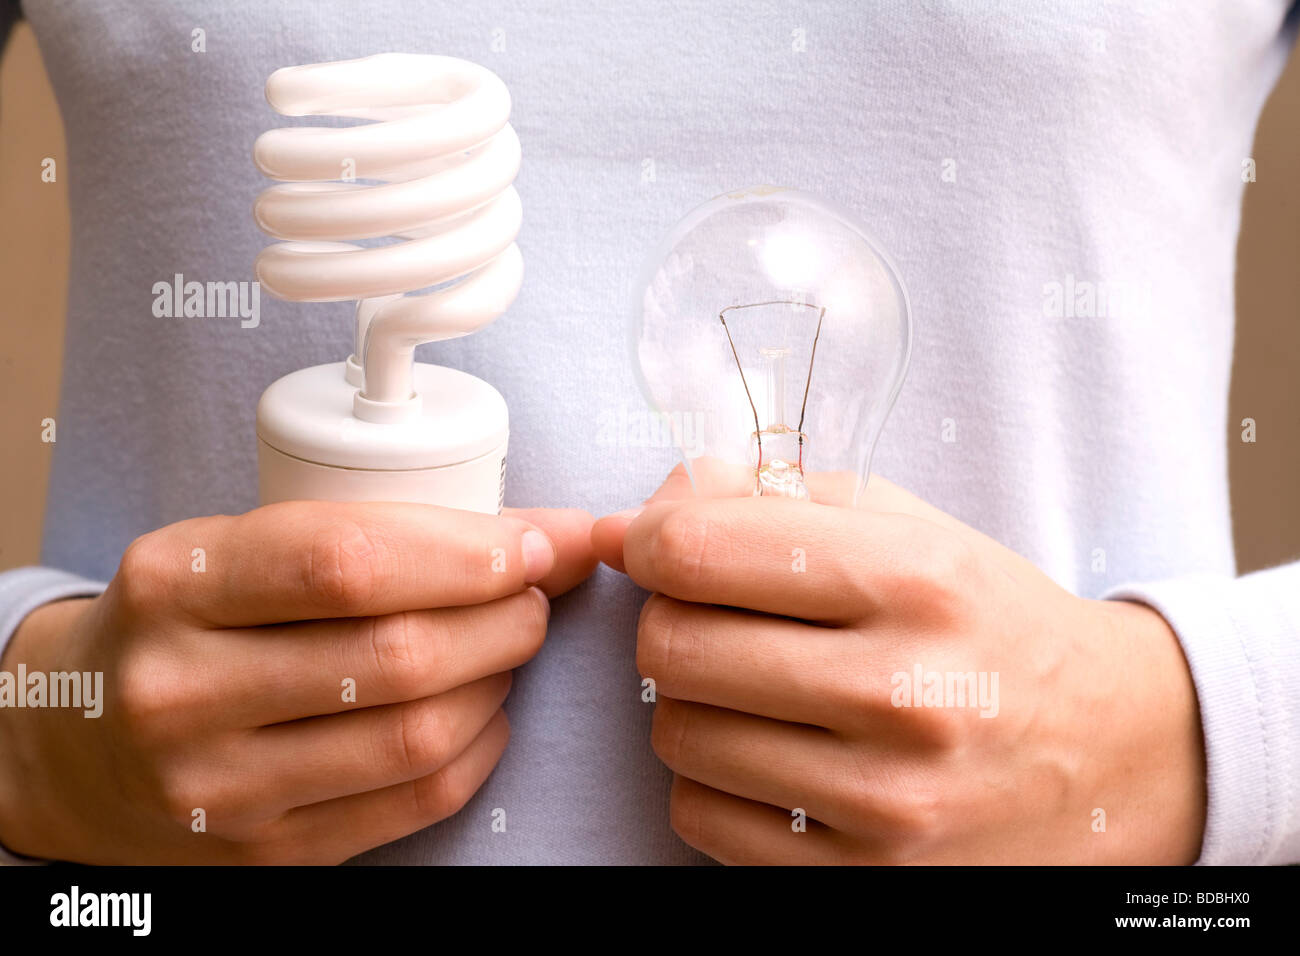 close-up of young woman holding conventional and low energy light bulb - Stock Image